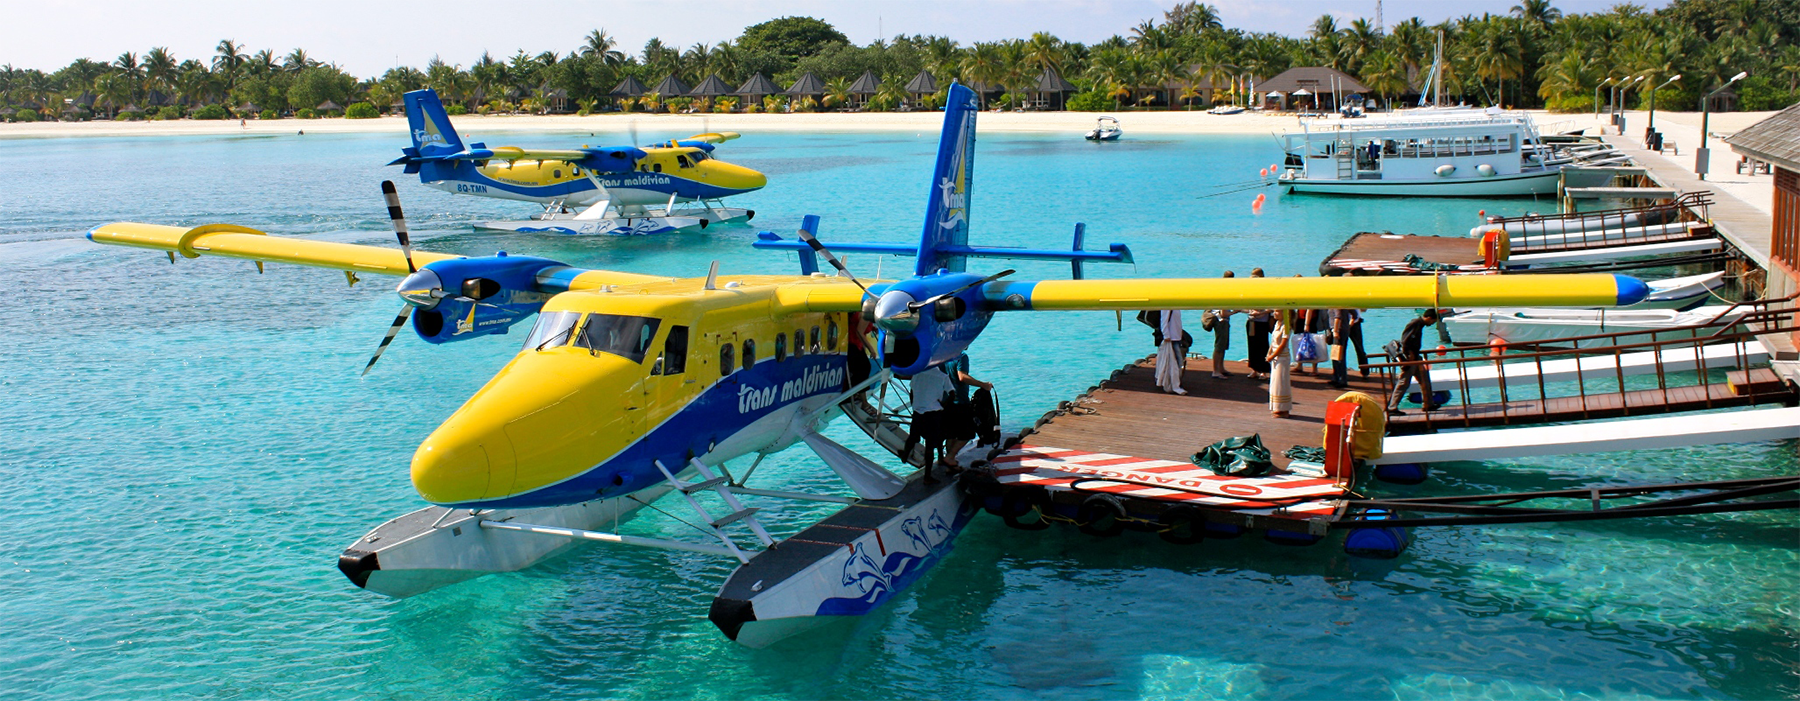 Fly General Aviation Aircraft in the Florida Keys